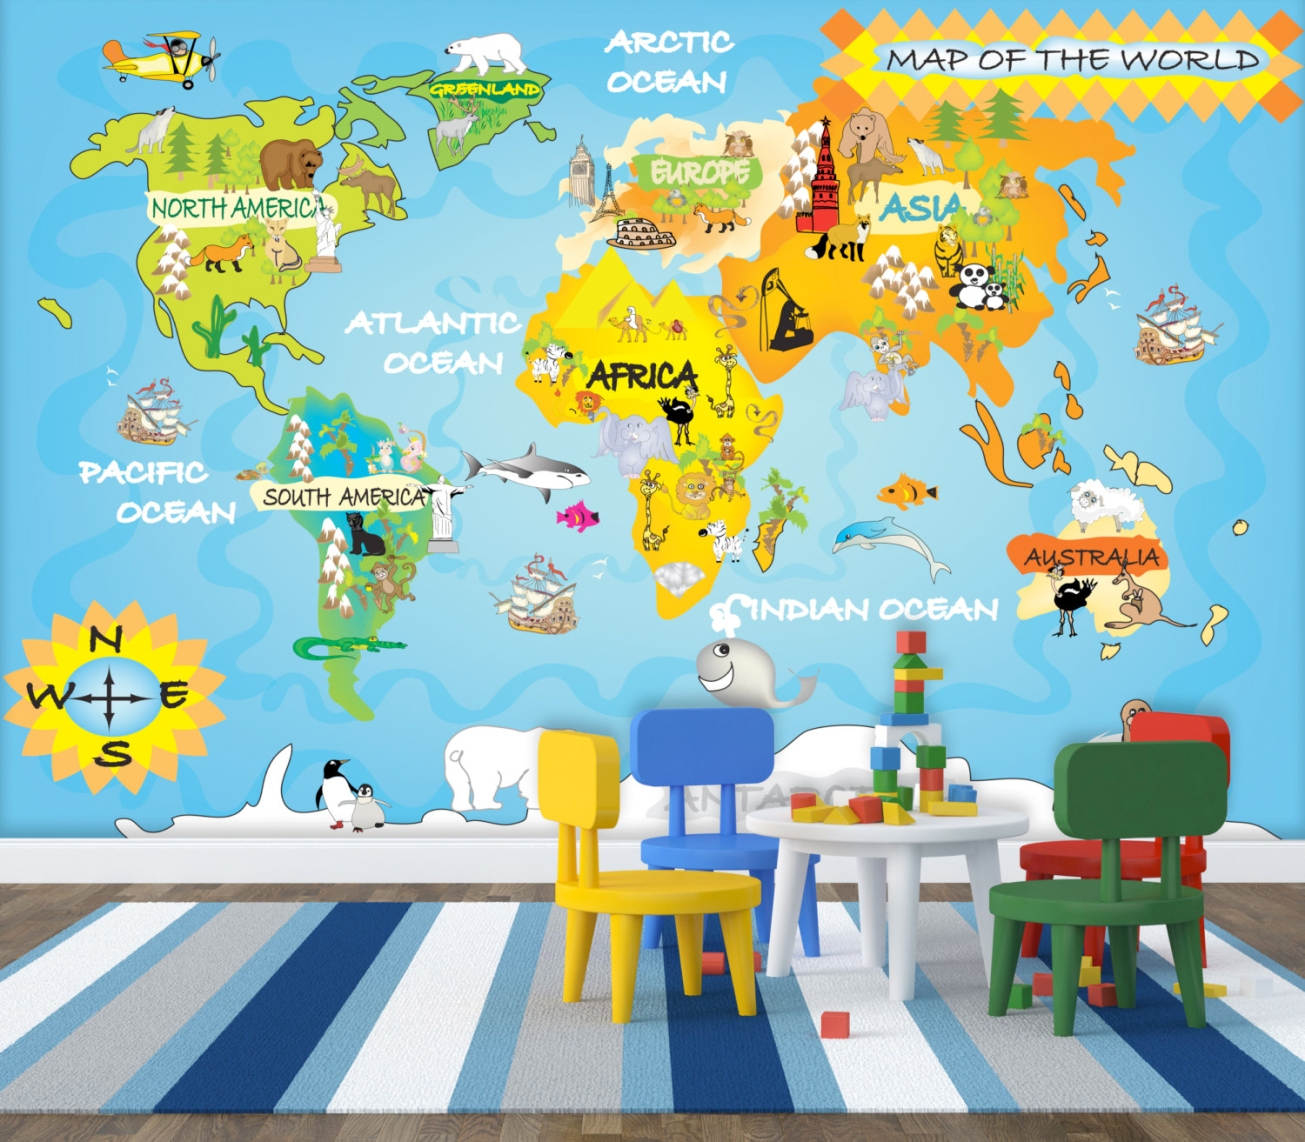 Kids map wall mural by StyleAWall, Etsy https://www.etsy.com/ca/listing/170744667/kids-map-wall-mural-repositionable-peel?ref=sr_gallery_1&ga_search_query=kids+map+wallpaper&ga_search_type=all&ga_view_type=gallery French Bull City Wall Decals By WallCandy, 2Modern http://www.2modern.com/products/french-bull-city-wall-decals